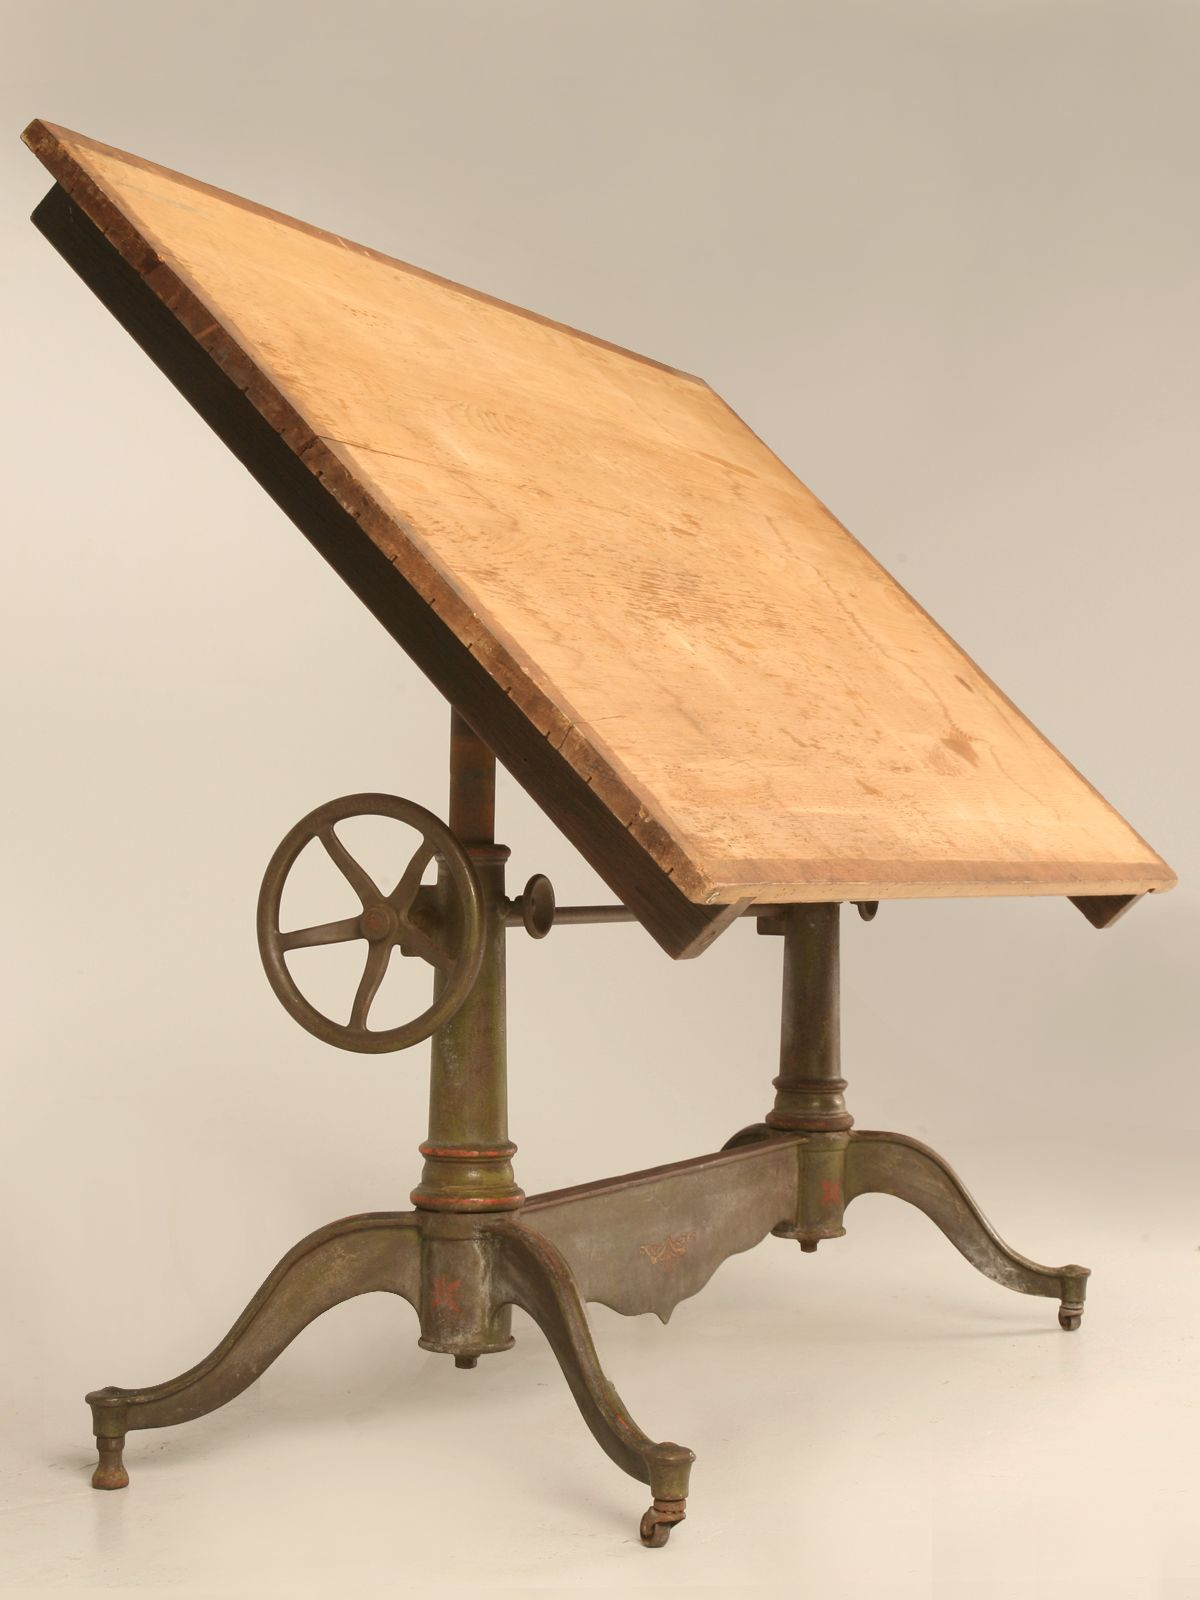 Drafting table home design ideas how to choose the best drafting - Antique American Drafting Or Drawing Table By Columbia Houses I Like Ideas For Homes Spaces I Liked May A